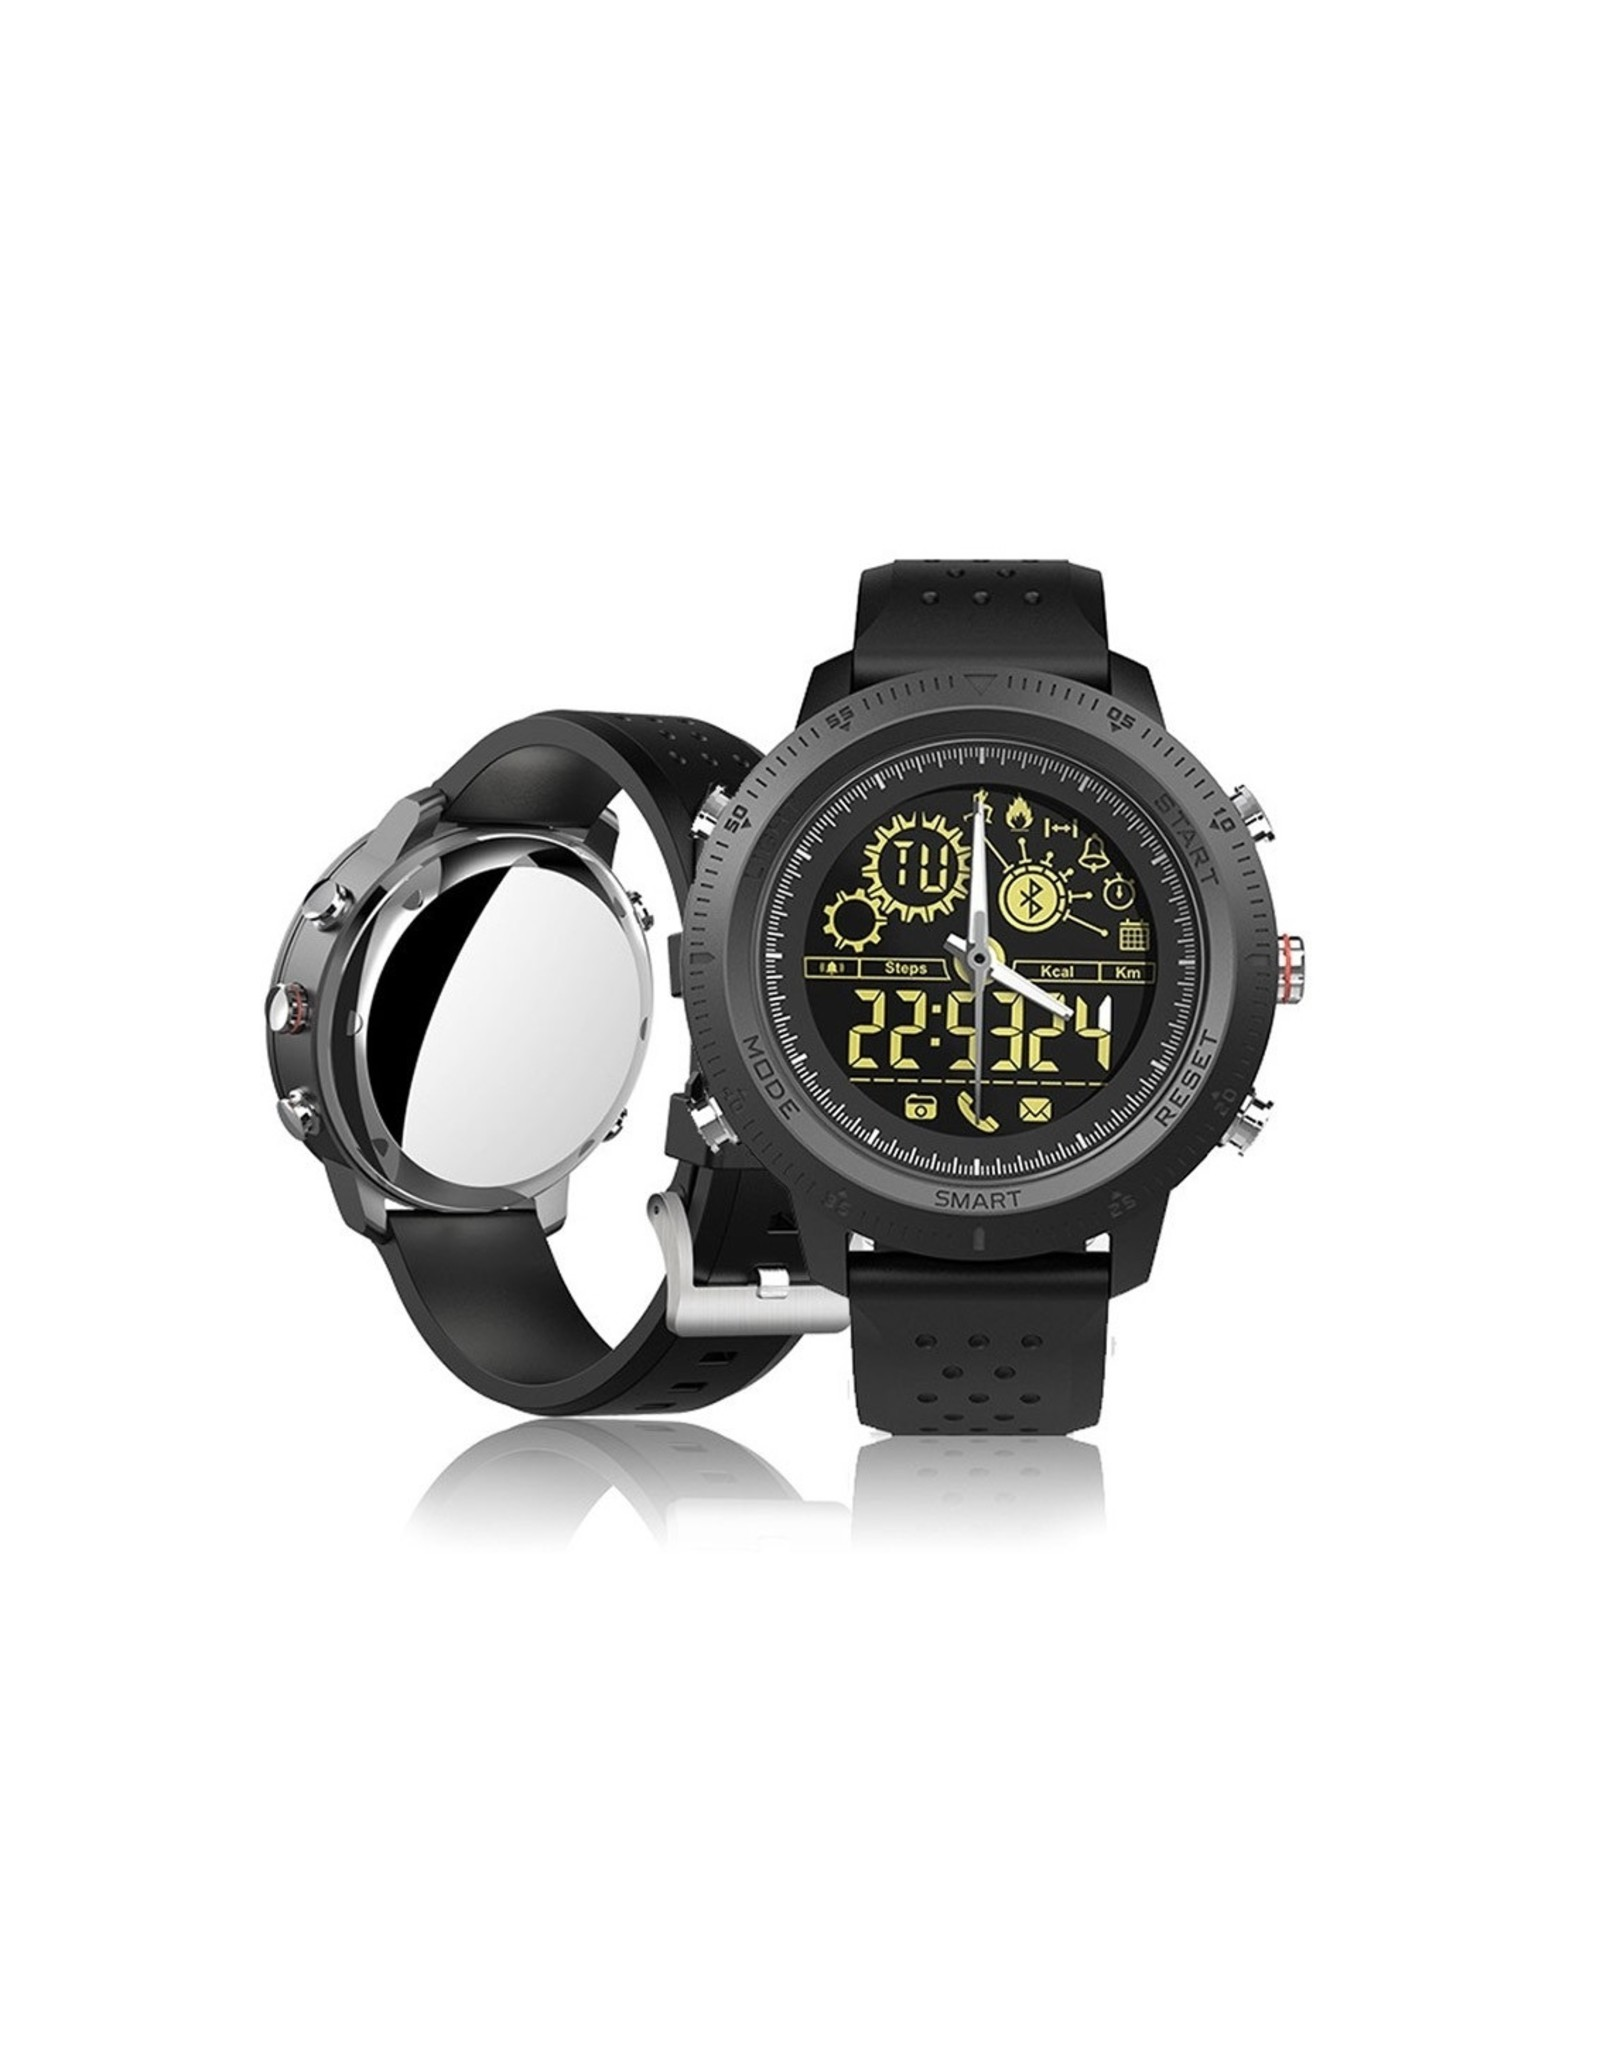 Parya Official Parya Official - Tactical Smartwatch